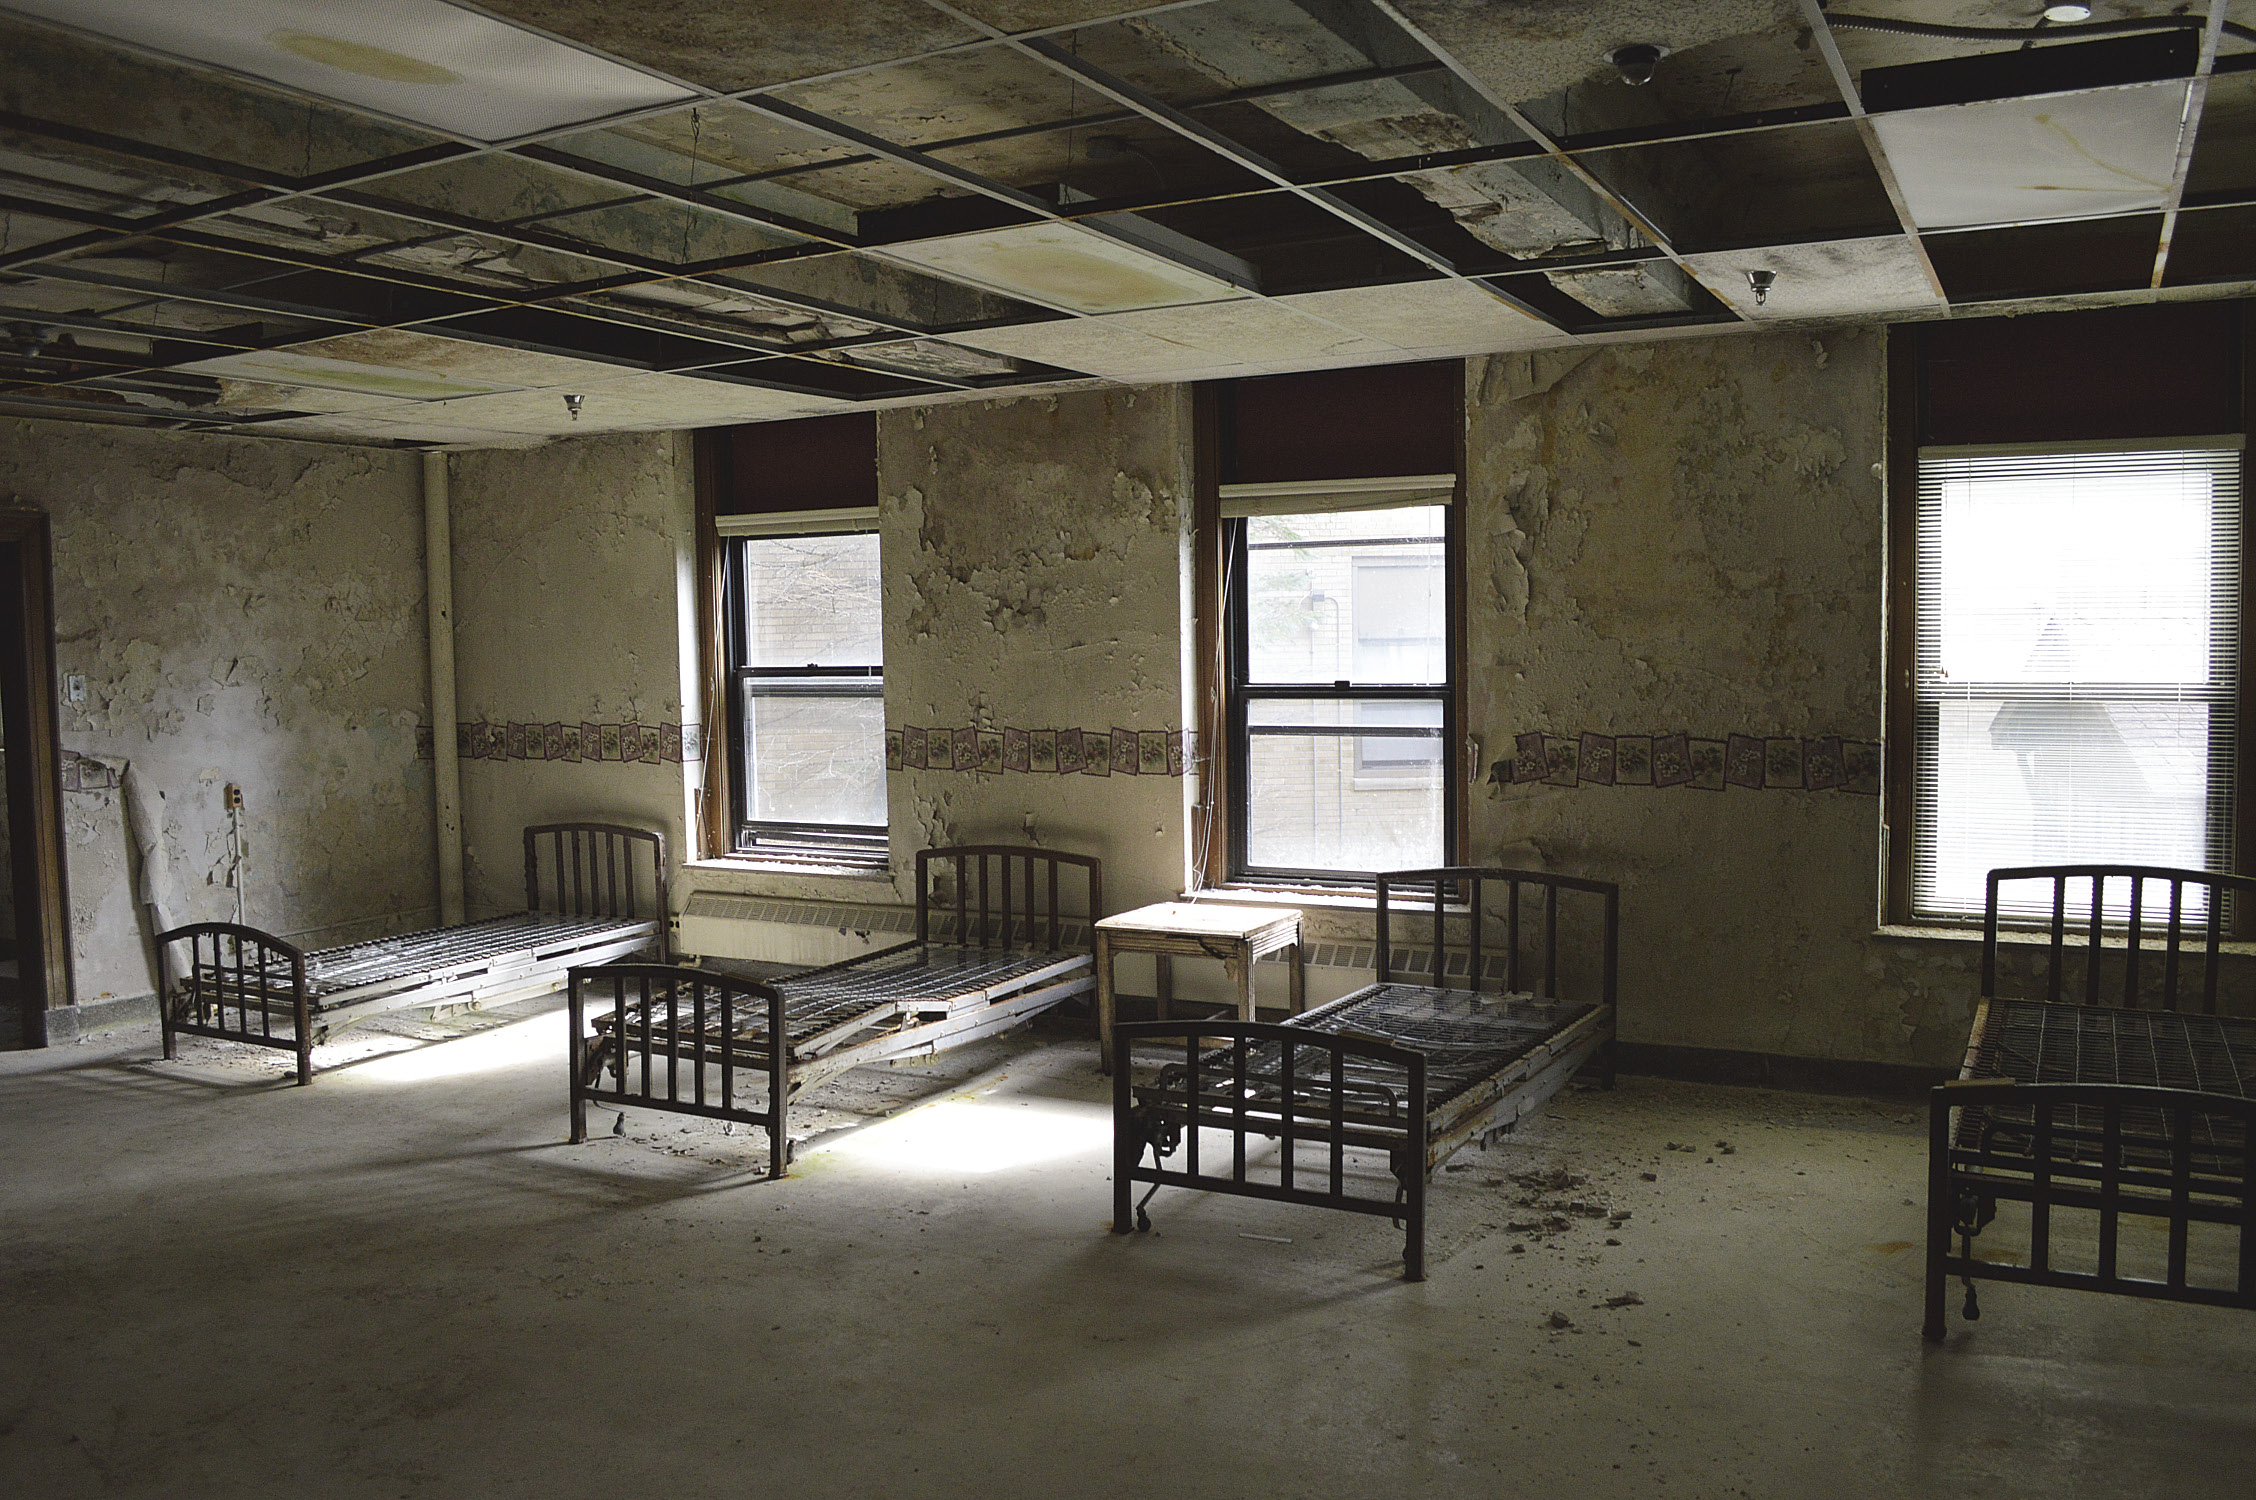 Nopeming Sanatorium in Duluth, MN was originally a tuberculosis treatment center, opened in 1912.